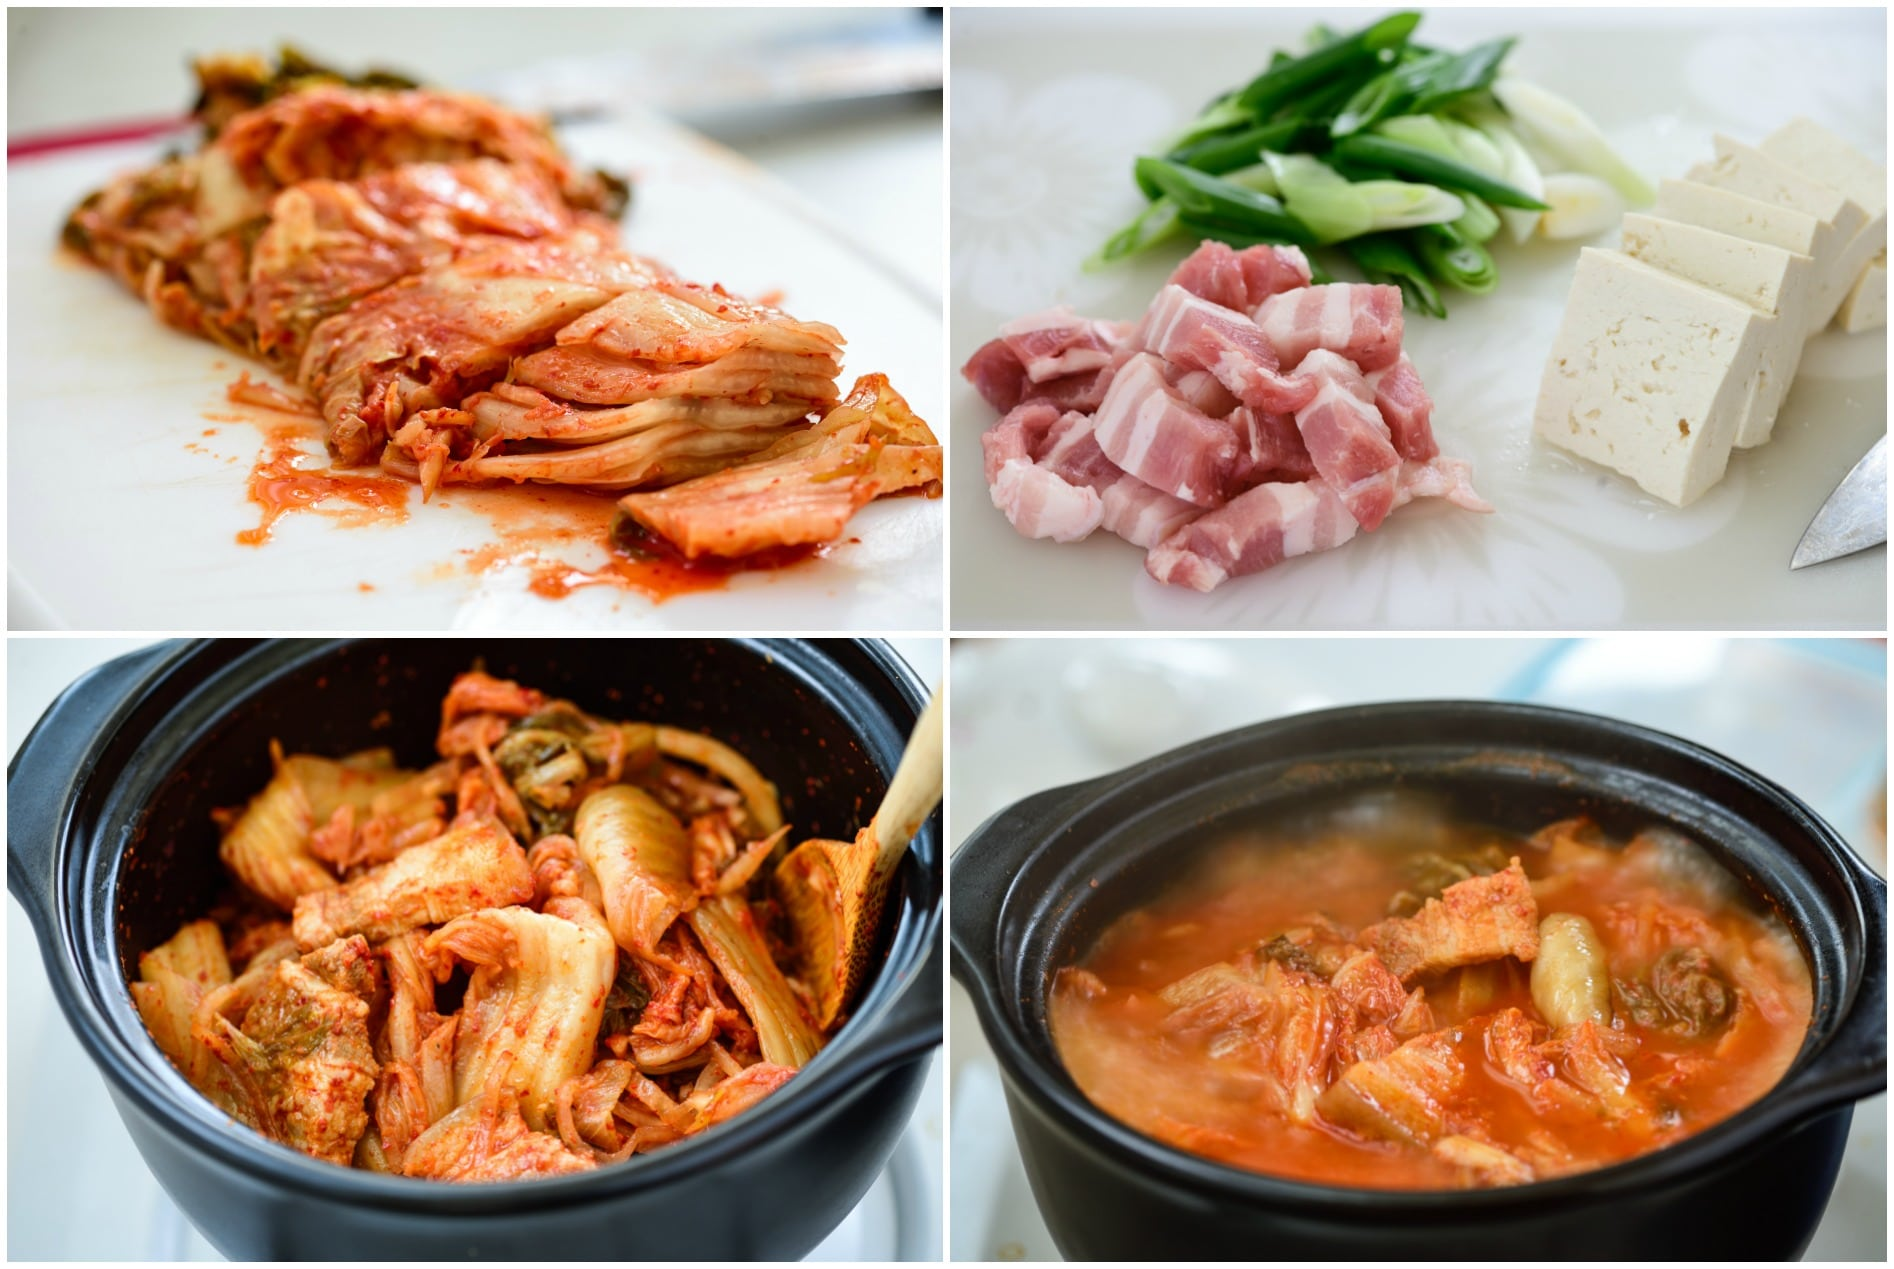 4 photo collage of kimchi stew steps - cutting and cooking pork, kimchi, tofu and scallions